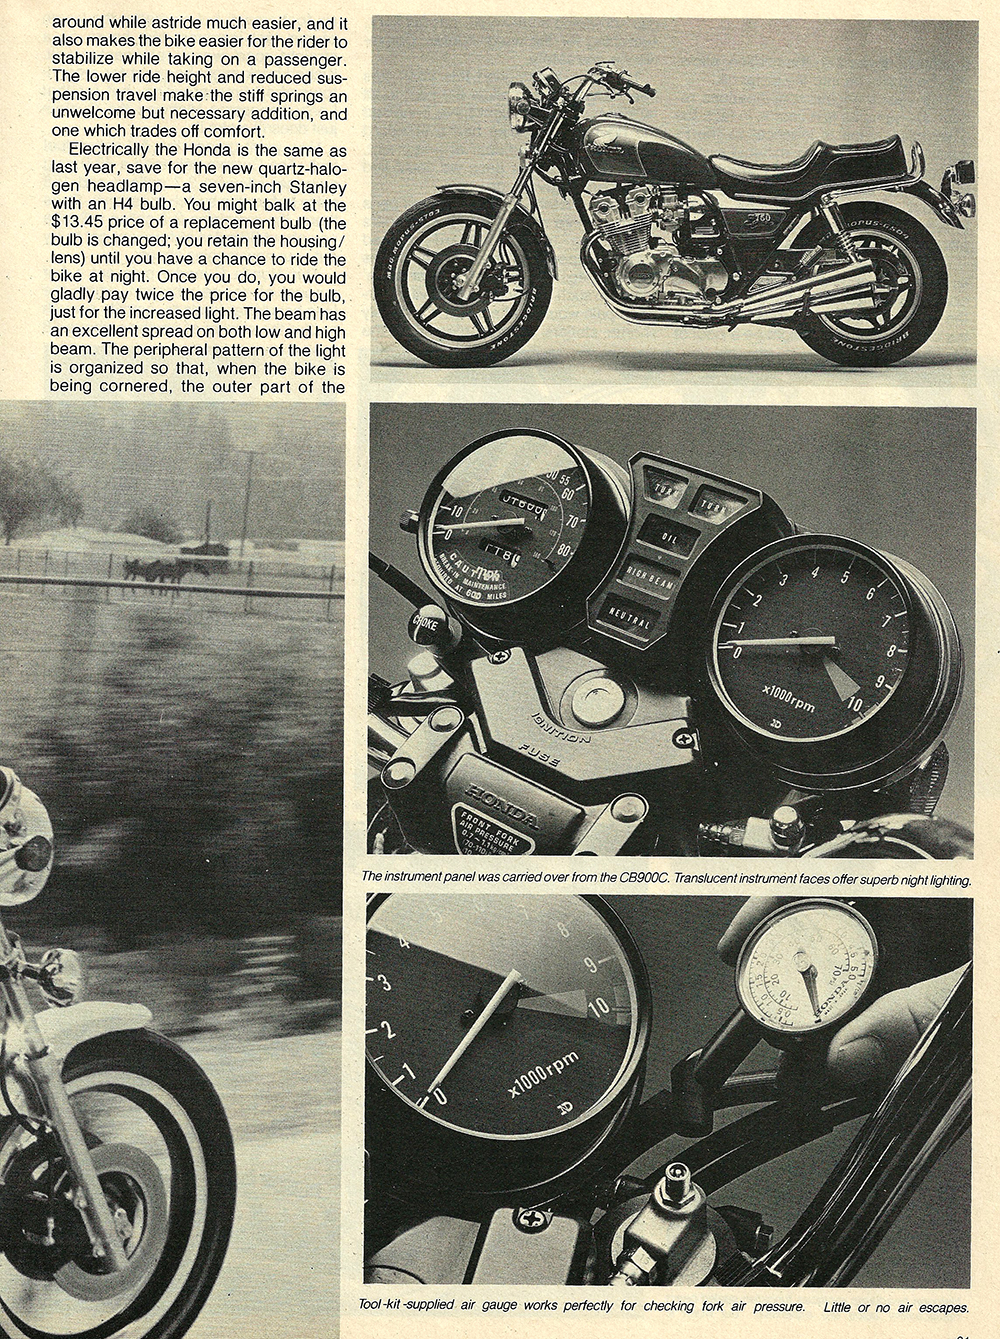 1980 Honda CB750C road test — Ye Olde Cycle Shoppe